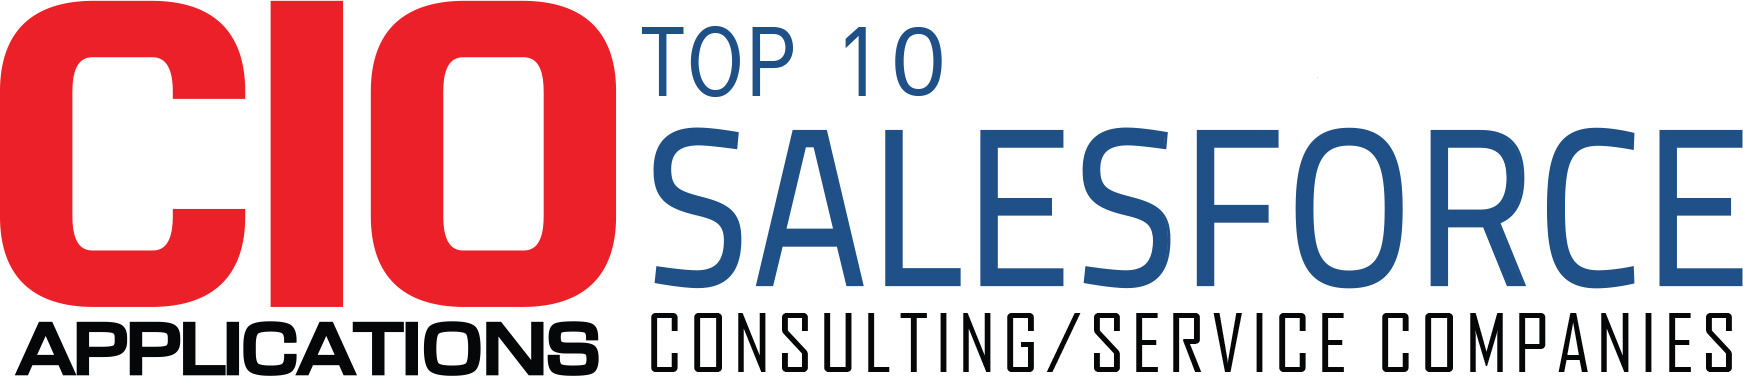 Top 10 Salesforce Consulting/Services Companies - 2019